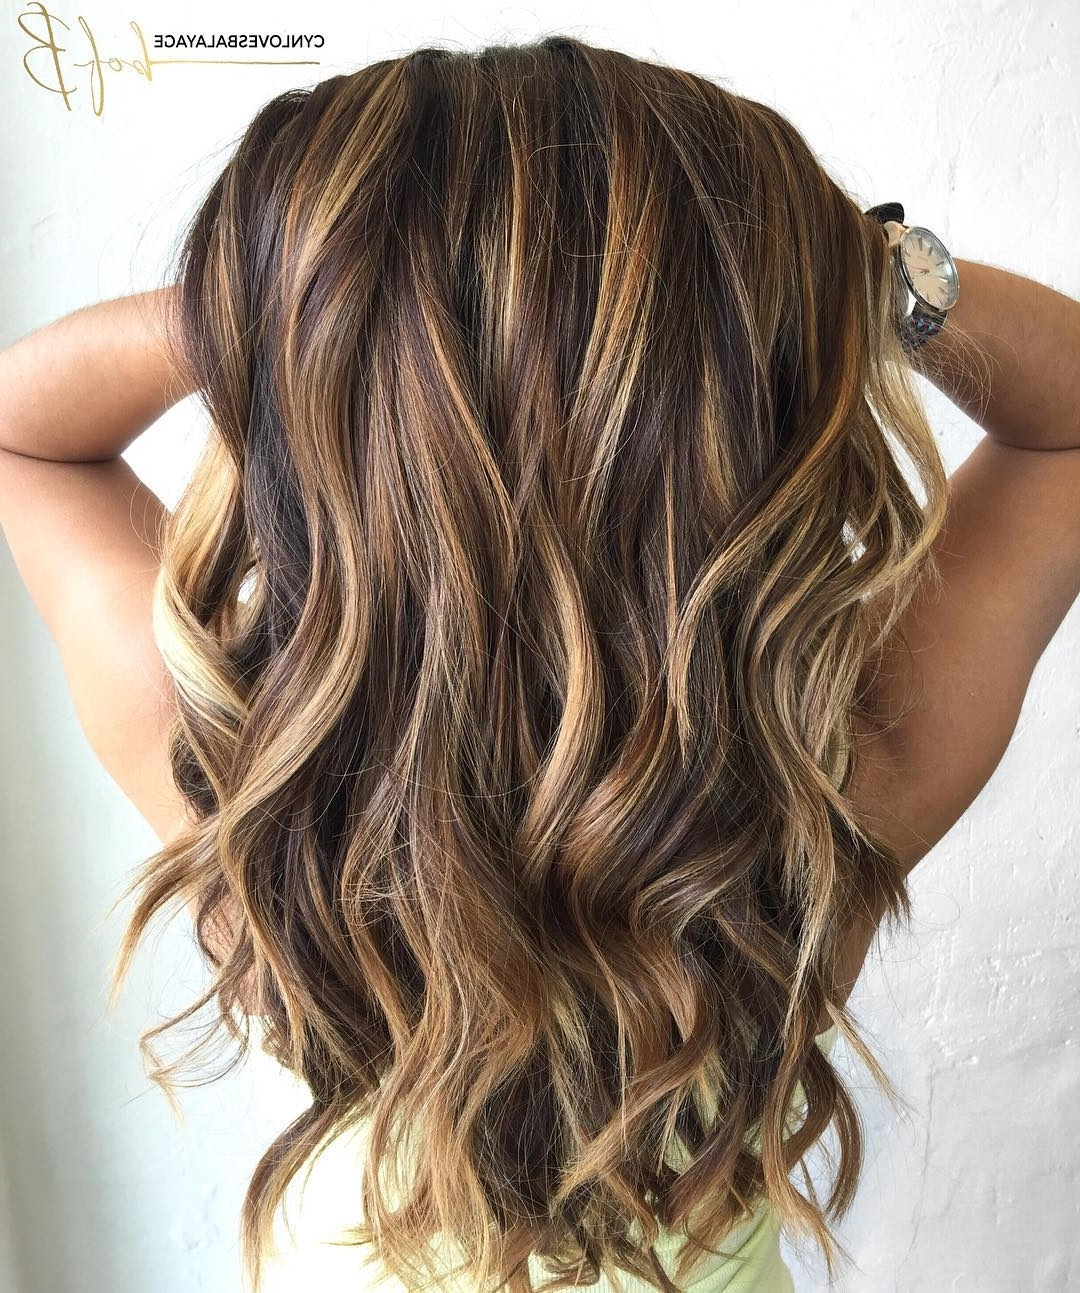 2017 Dirty Blonde Balayage Babylights Hairstyles Within 60 Looks With Caramel Highlights On Brown And Dark Brown Hair (View 4 of 20)